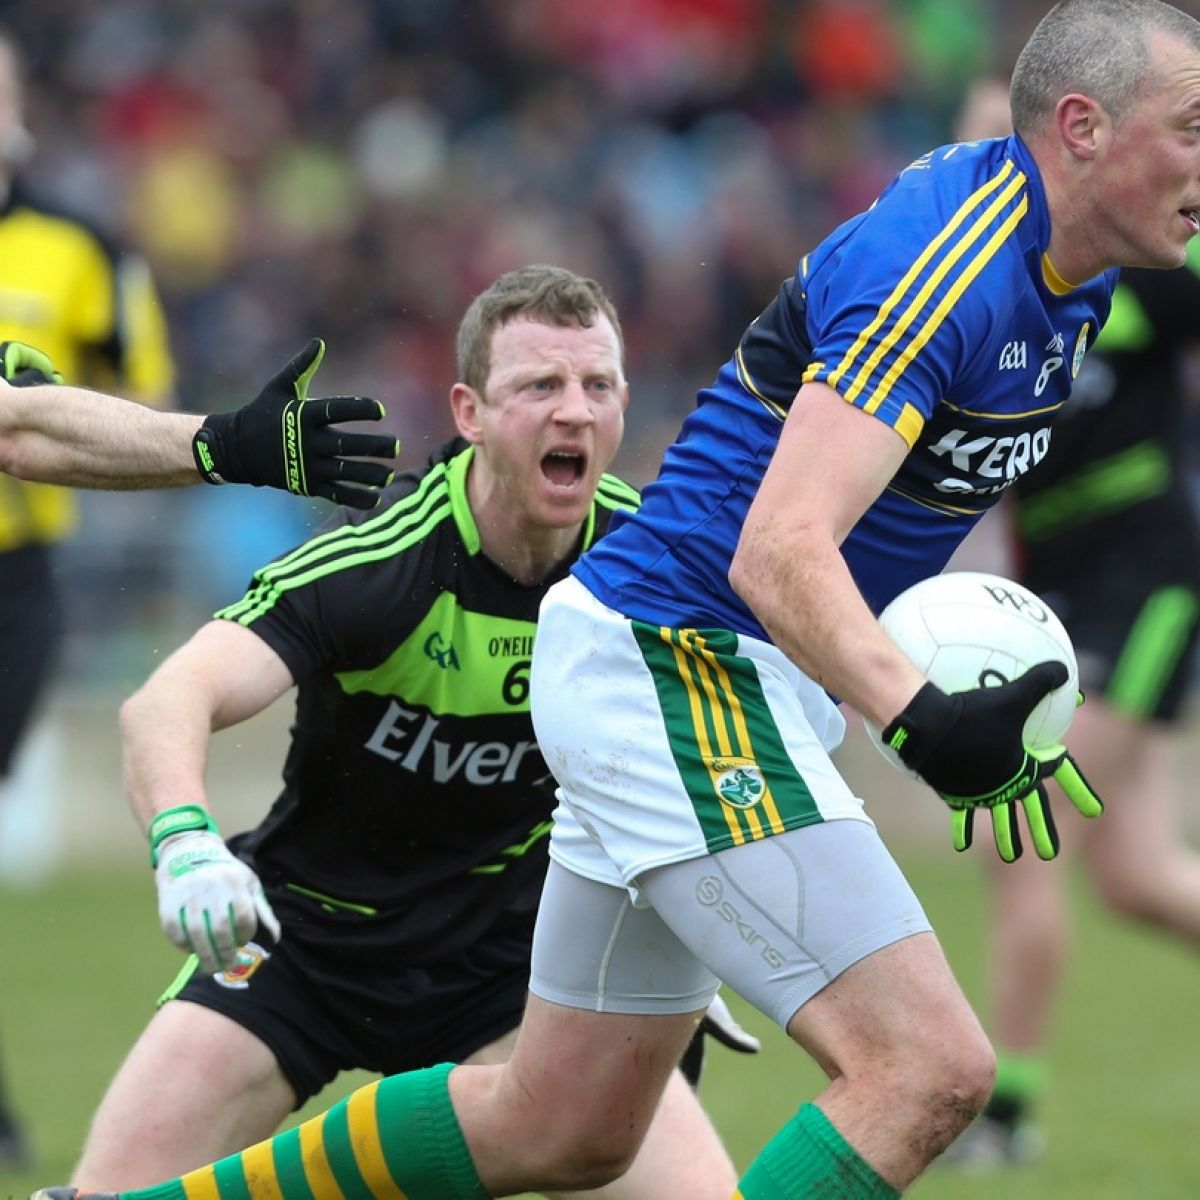 Roscommon end 33-year wait for victory in Mayo - RTE